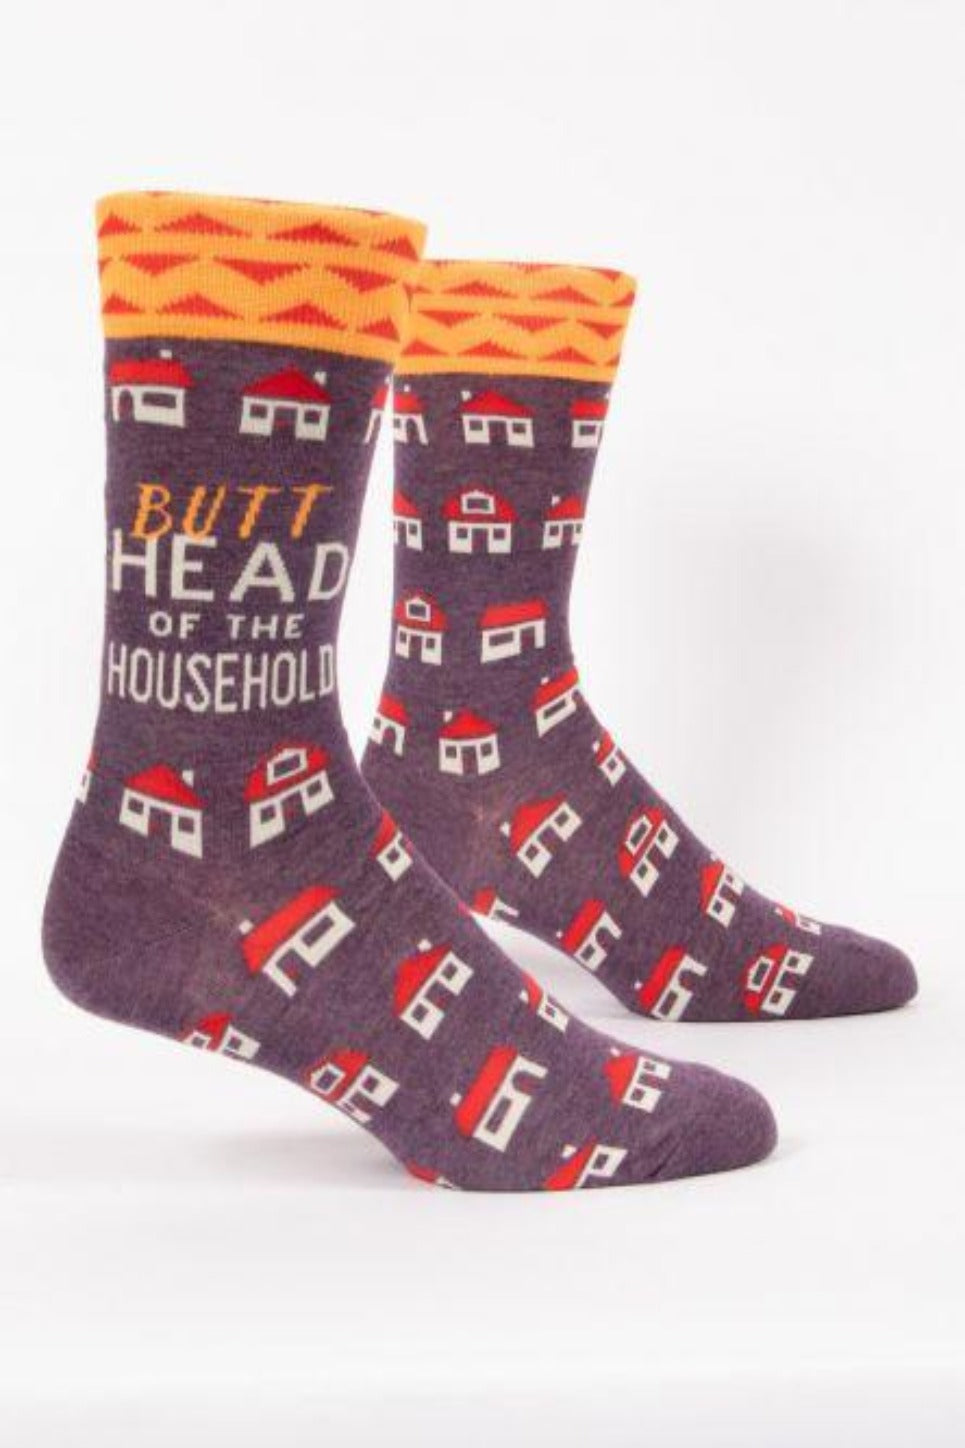 Butthead Household Men's Crew Socks